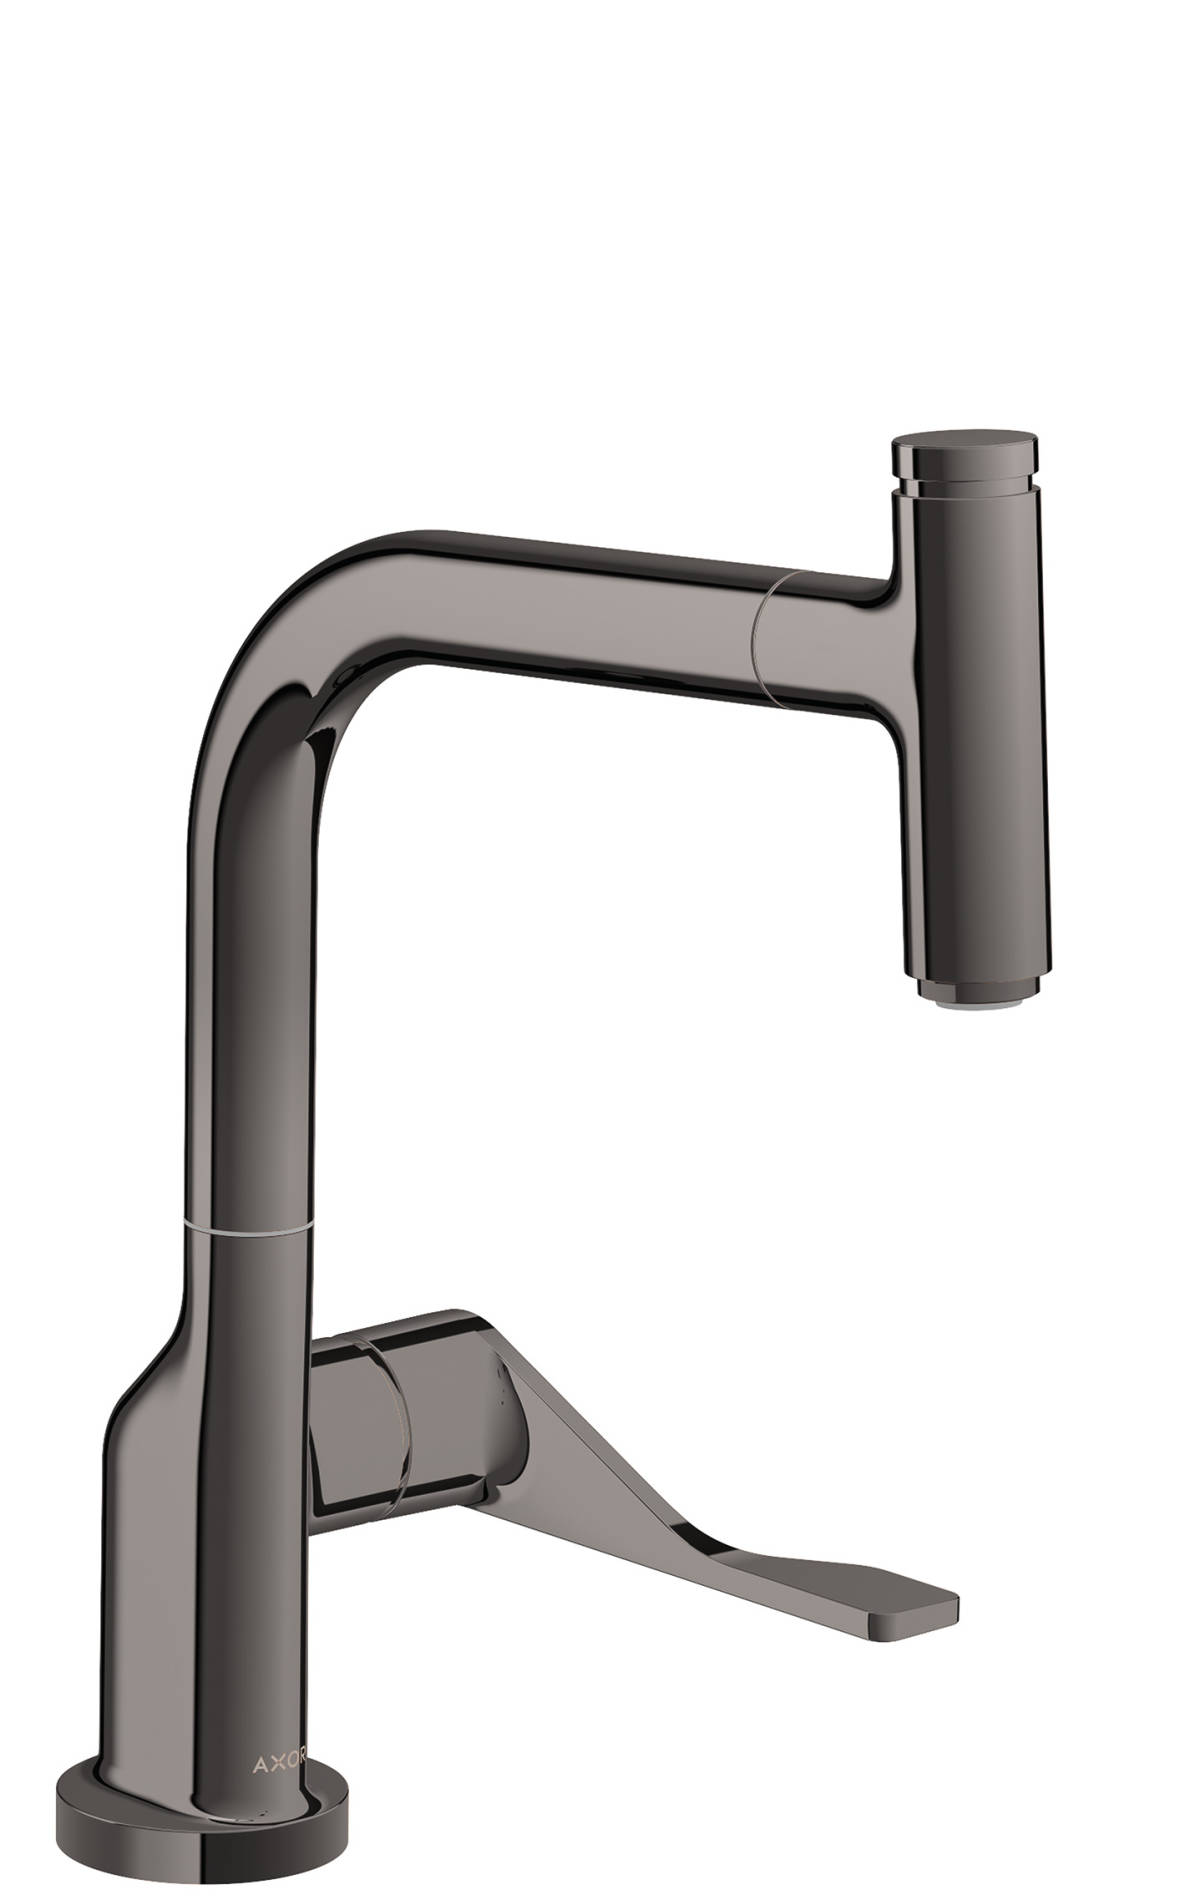 Single lever kitchen mixer Select 230 with pull-out spout, Polished Black Chrome, 39861330